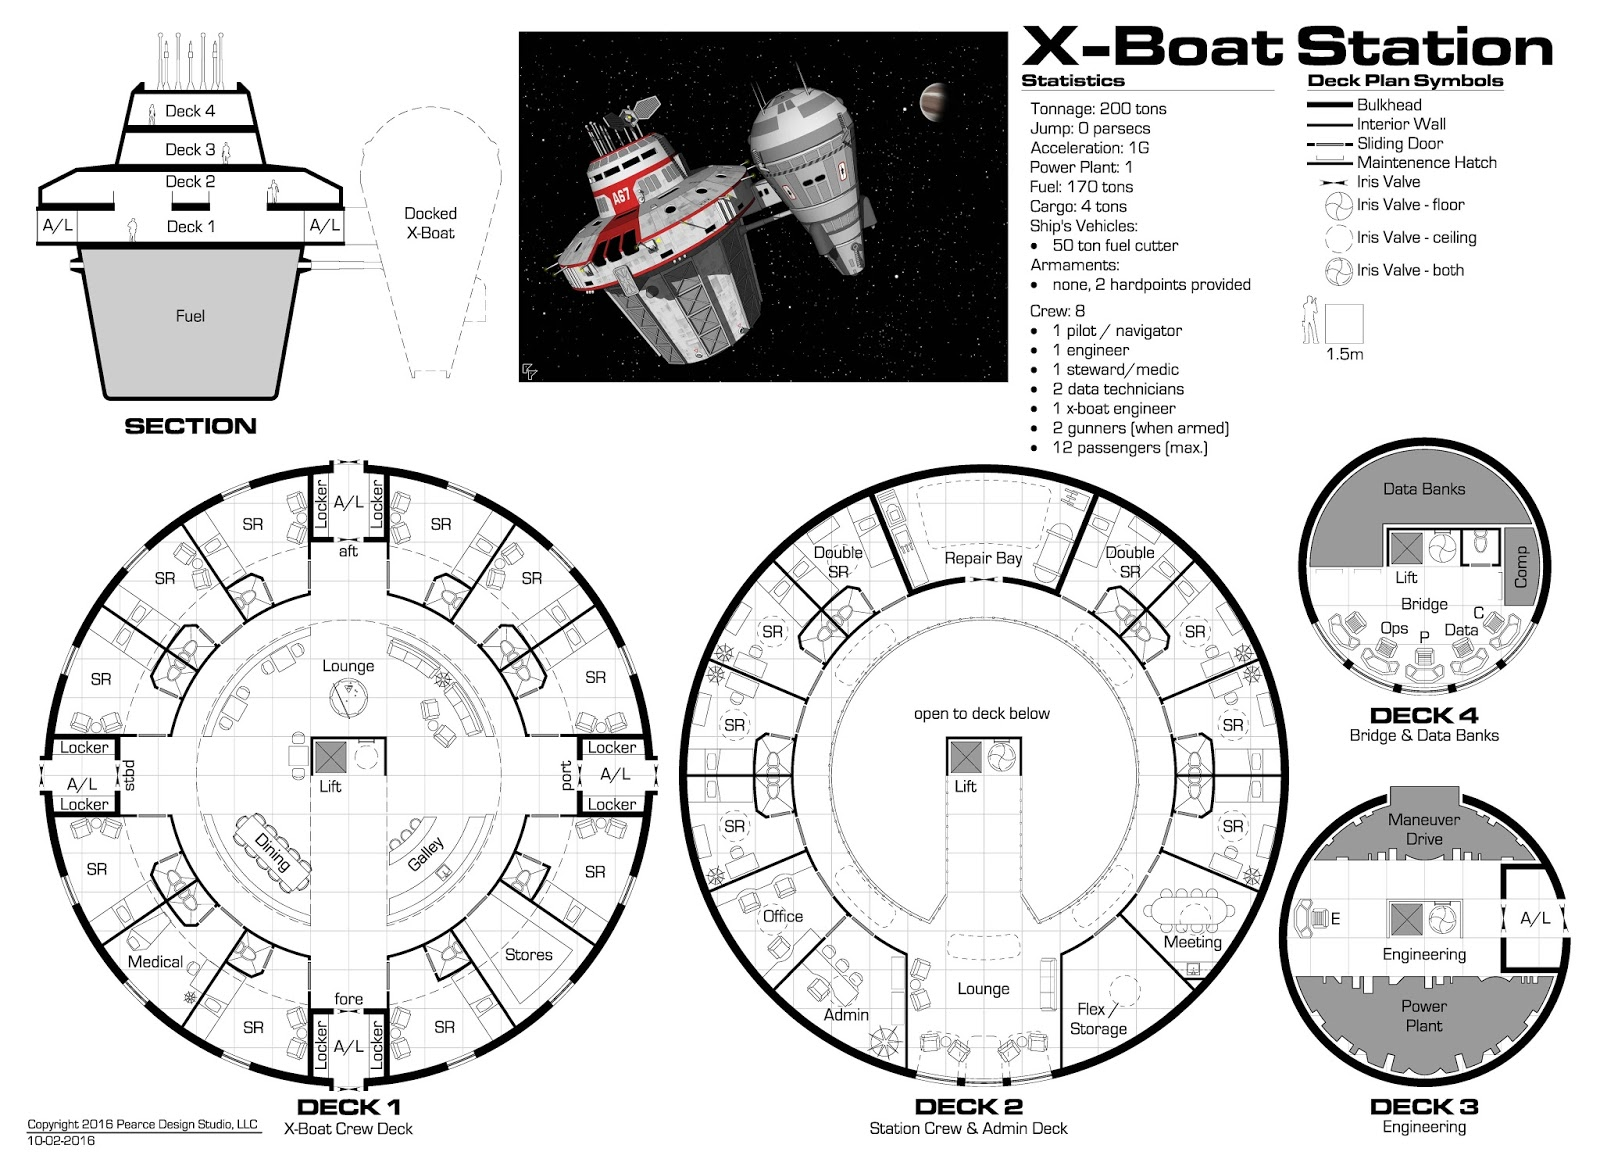 Yet another traveller blog october 2016 for a higher resolution pdf click this link traveller x boat station deck plan baanklon Choice Image